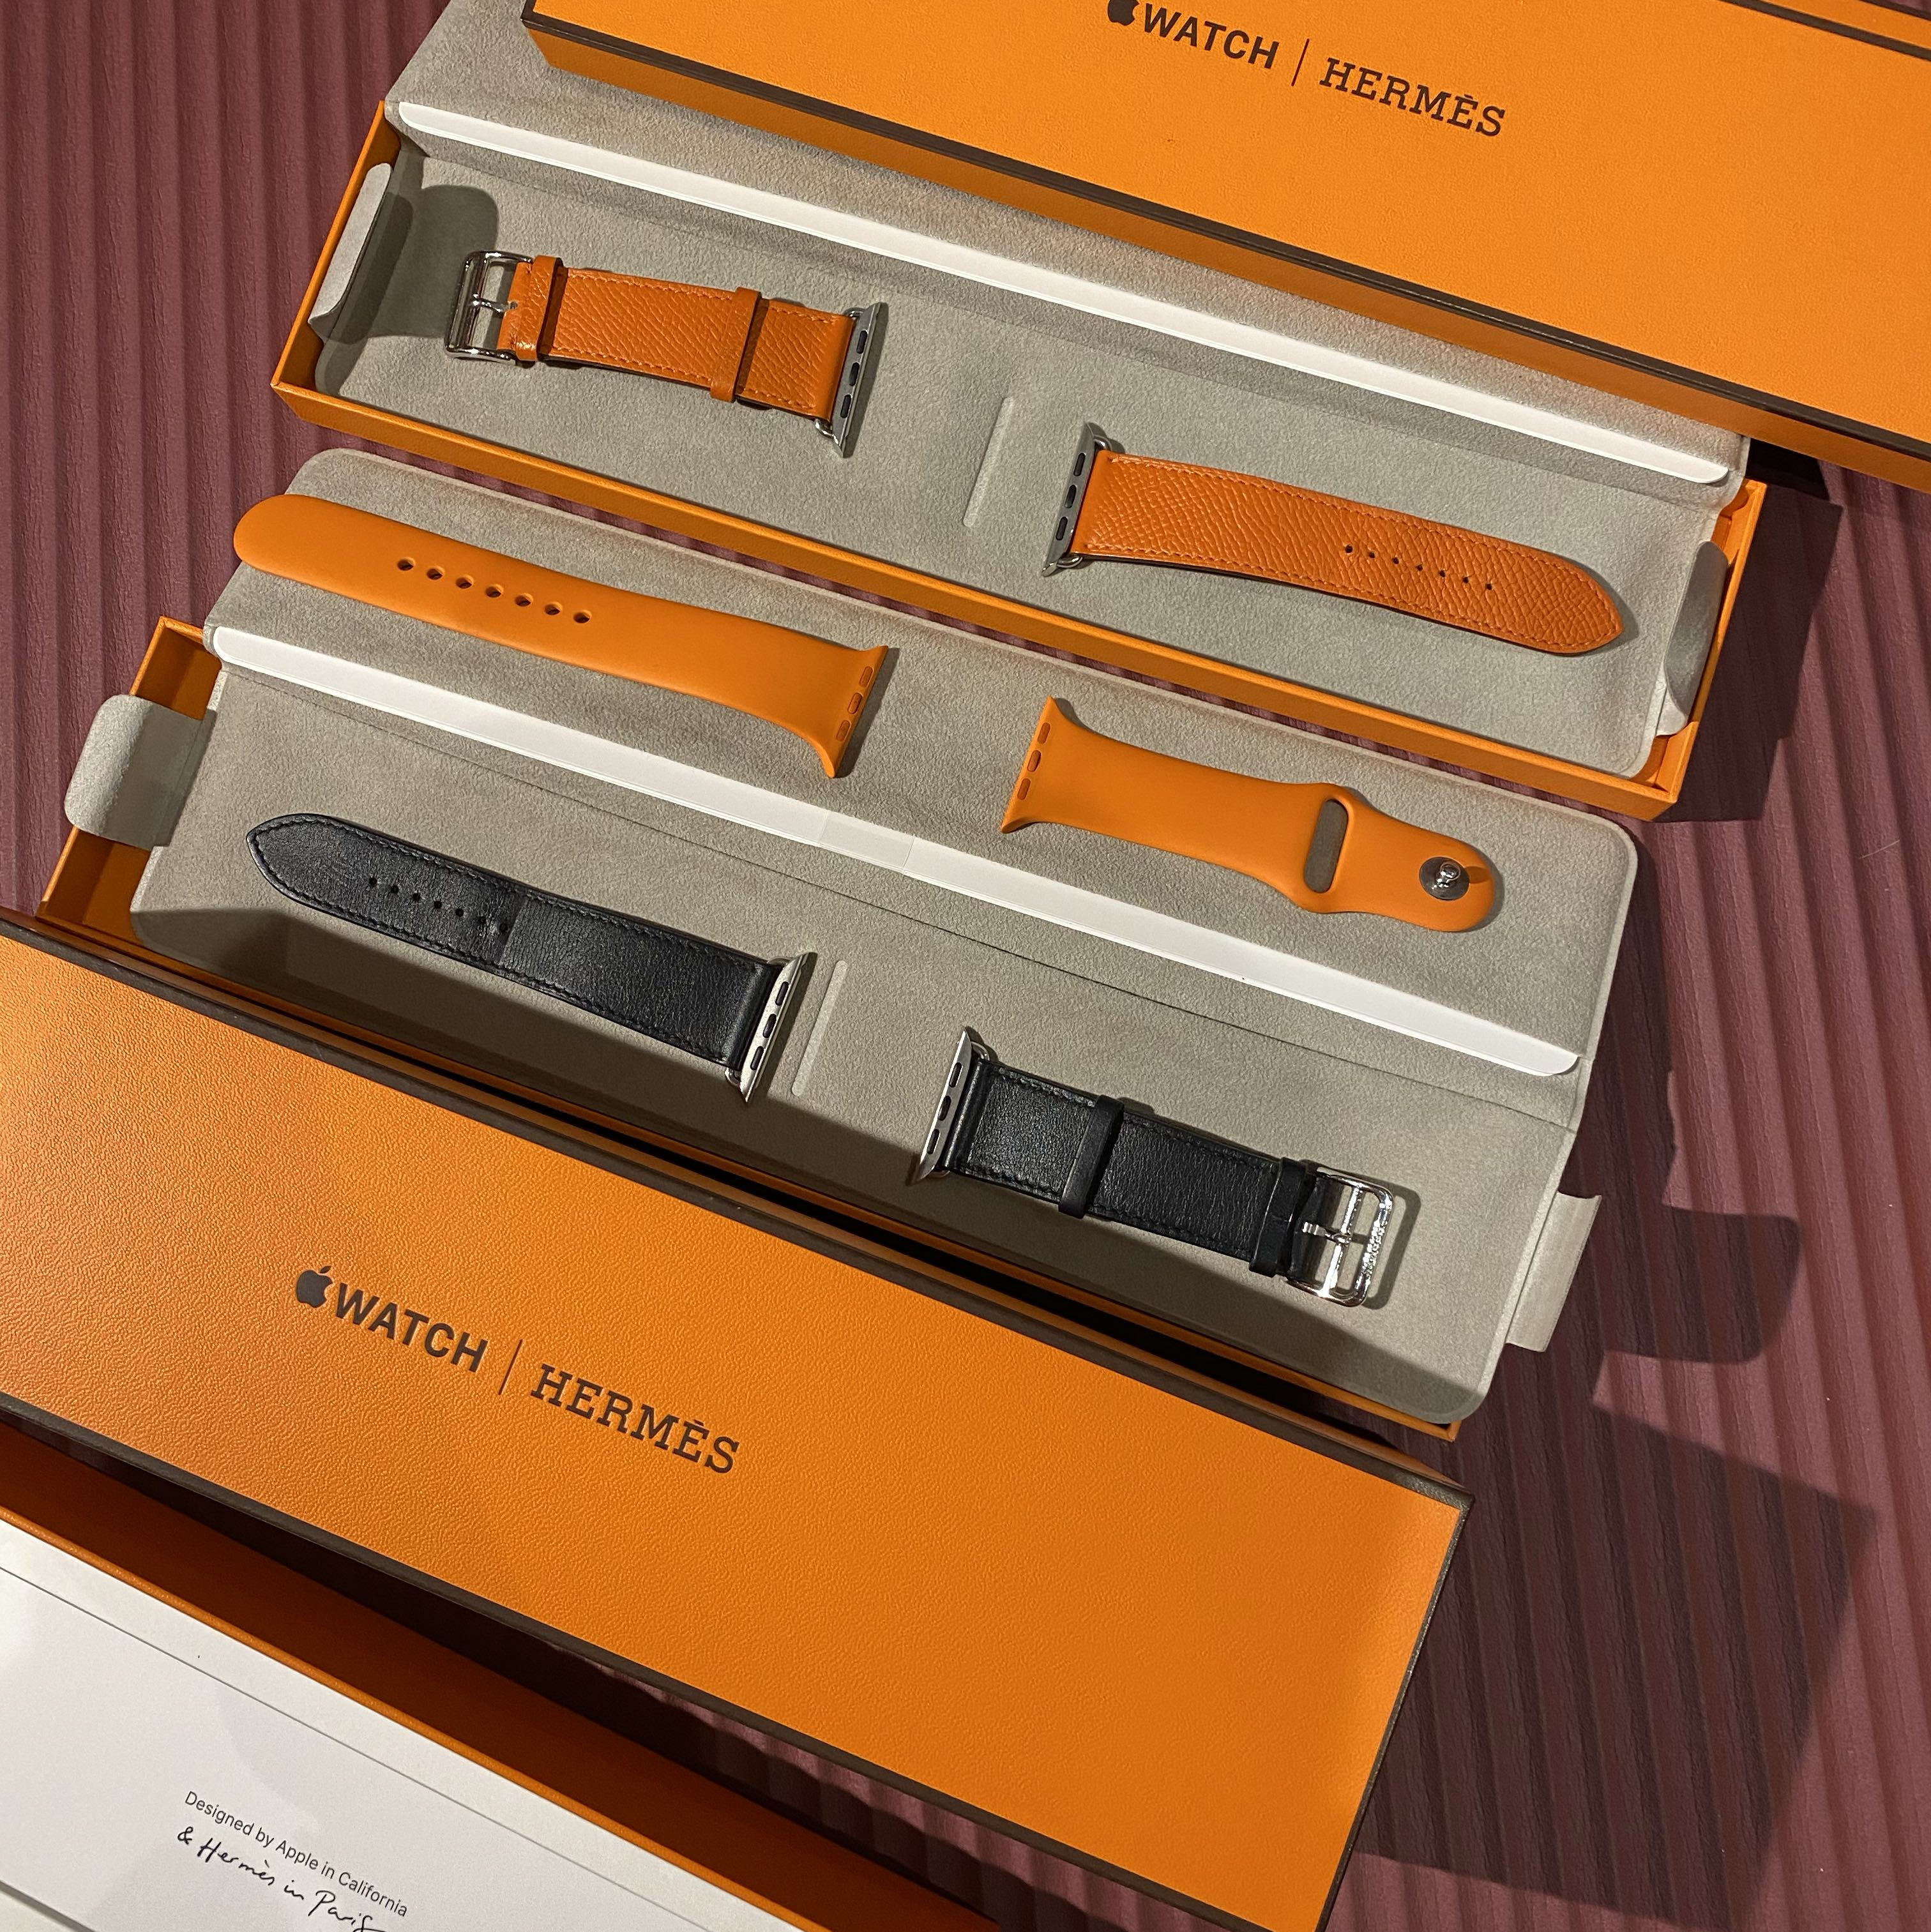 Brand new Apple Watch Hermes 44mm LTE Series 4 03/2021 used band Hermes5